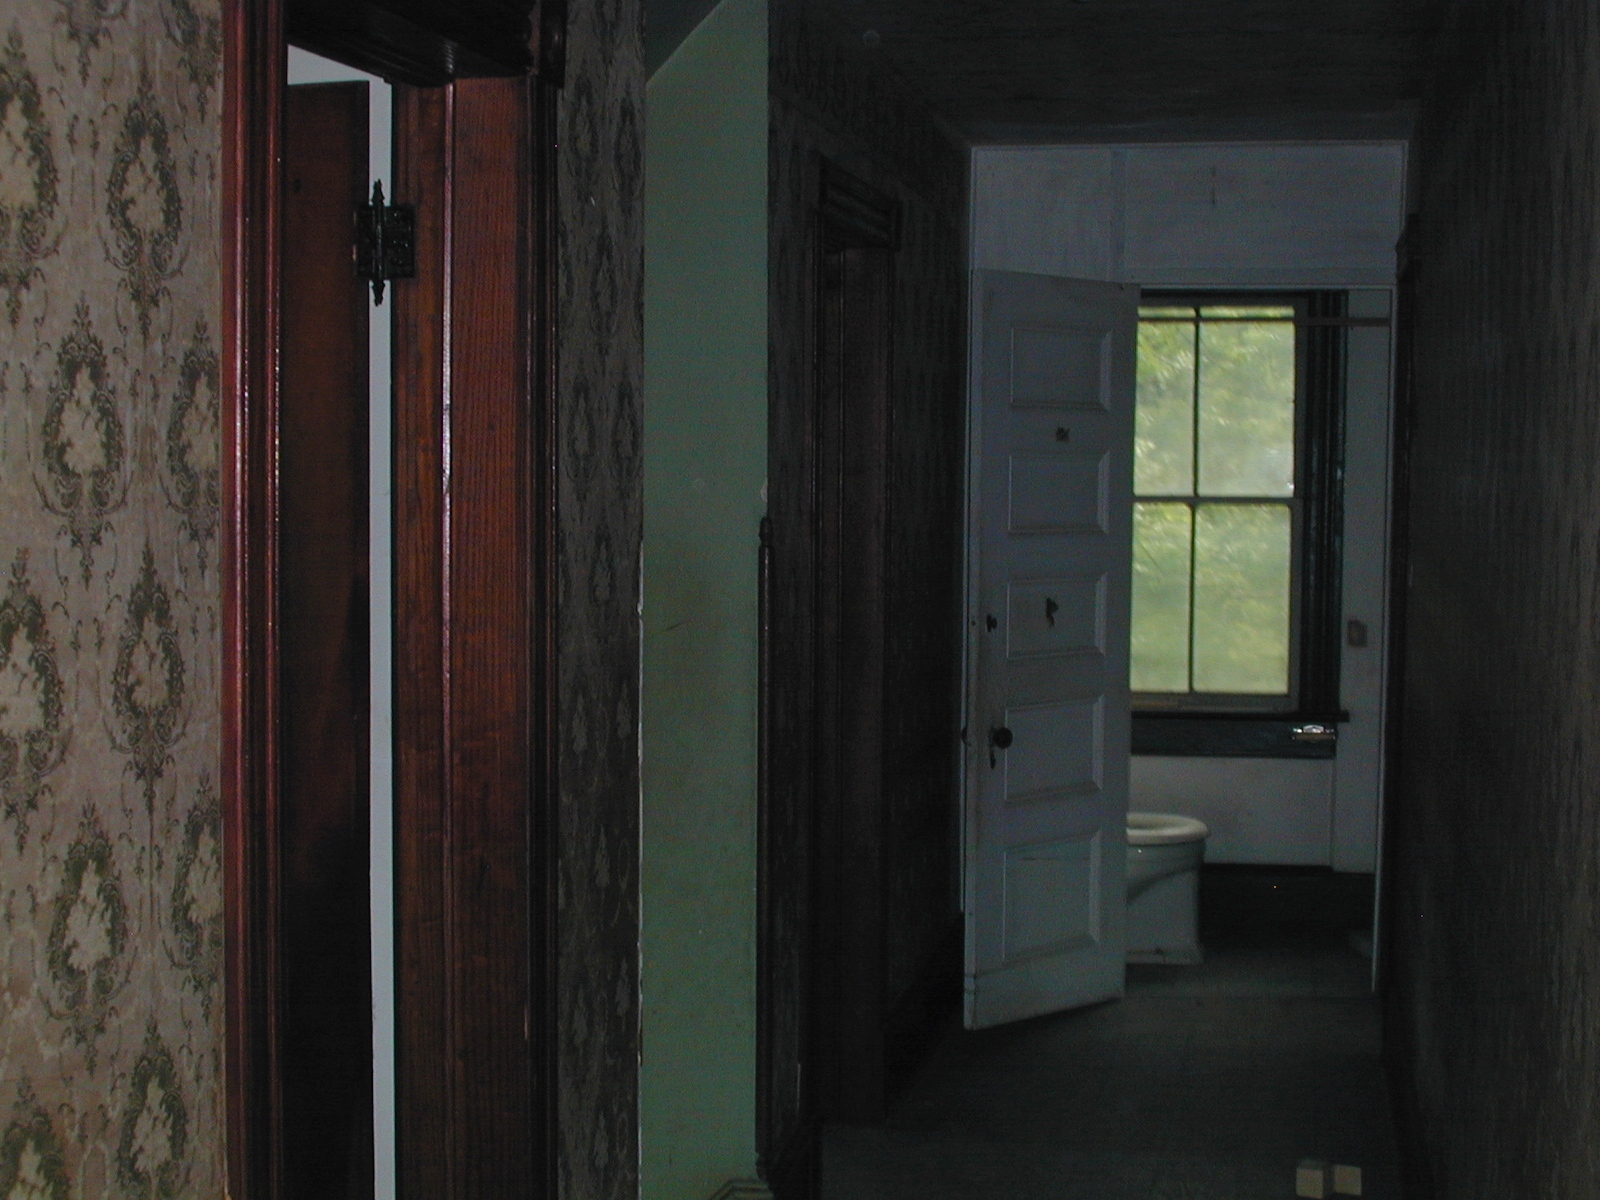 Third unknown house, upstairs hall